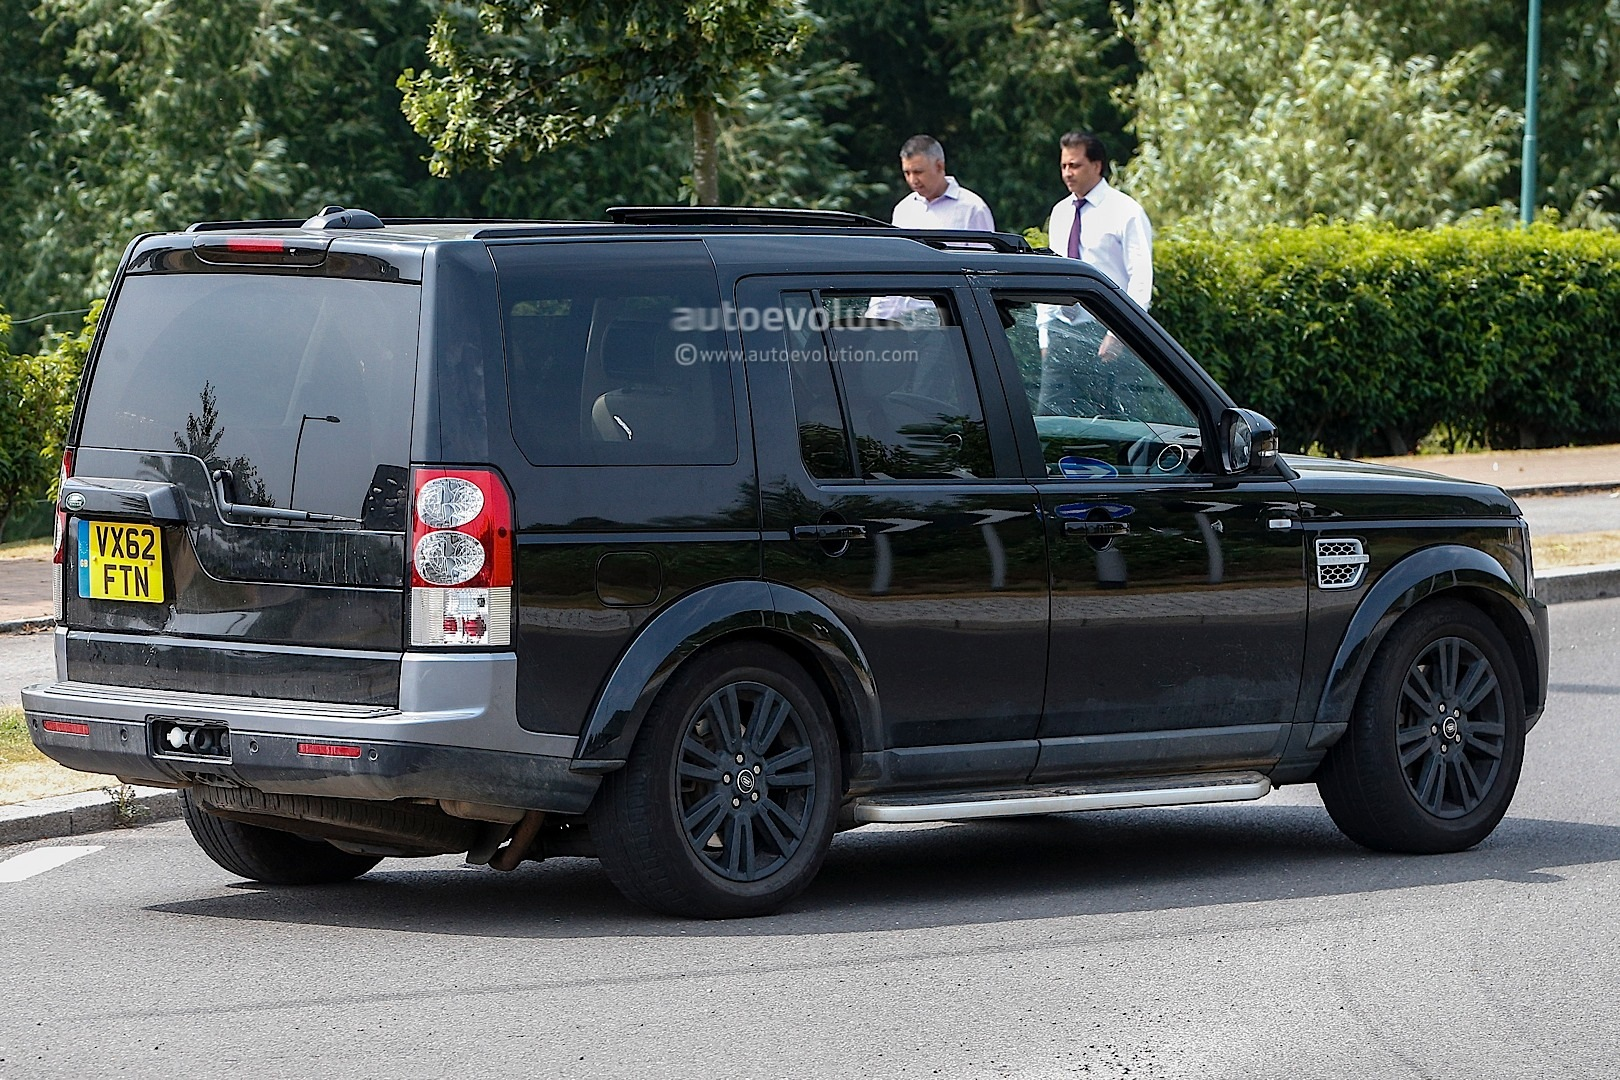 Spyshots 2014 Land Rover Discovery Facelift Autoevolution